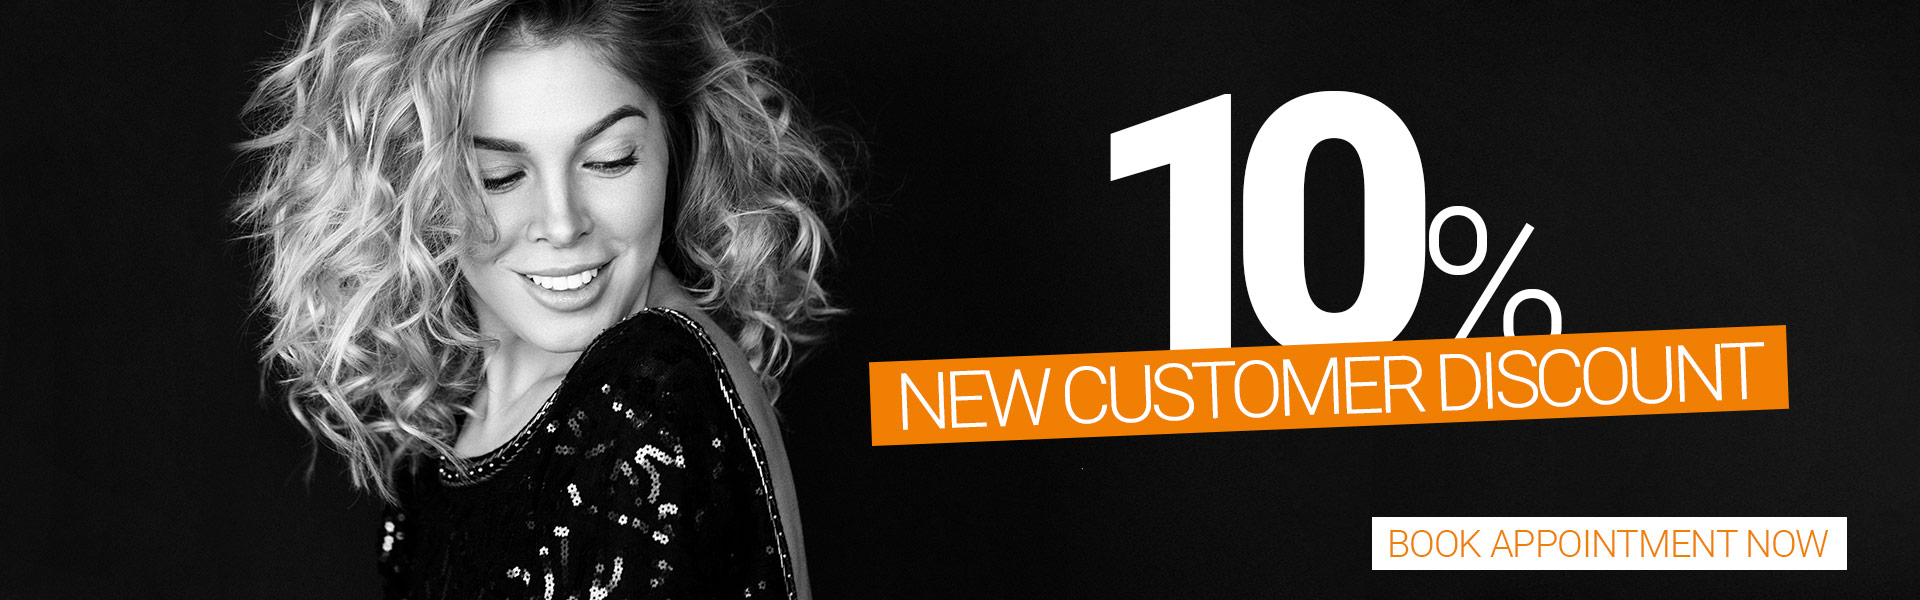 10% new customer discount banner